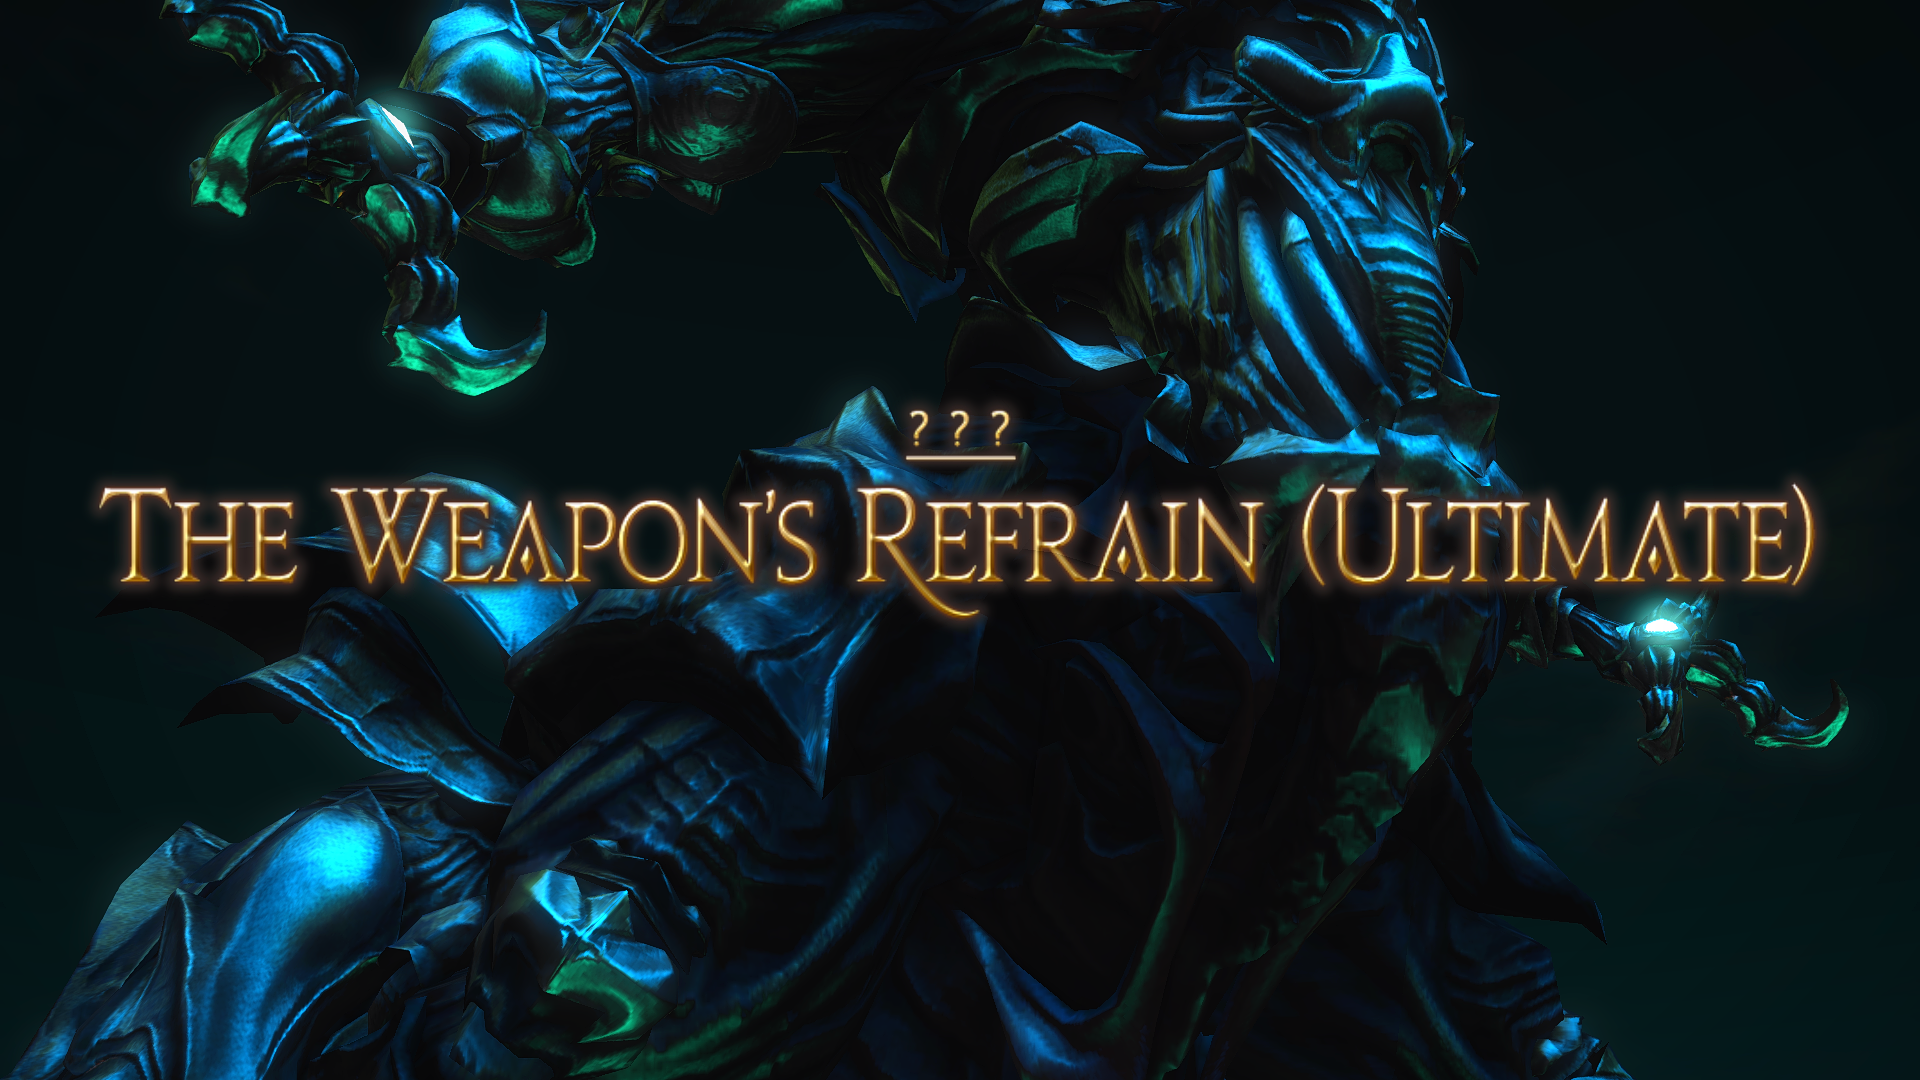 The Weapon's Refrain (Ultimate) – clees me